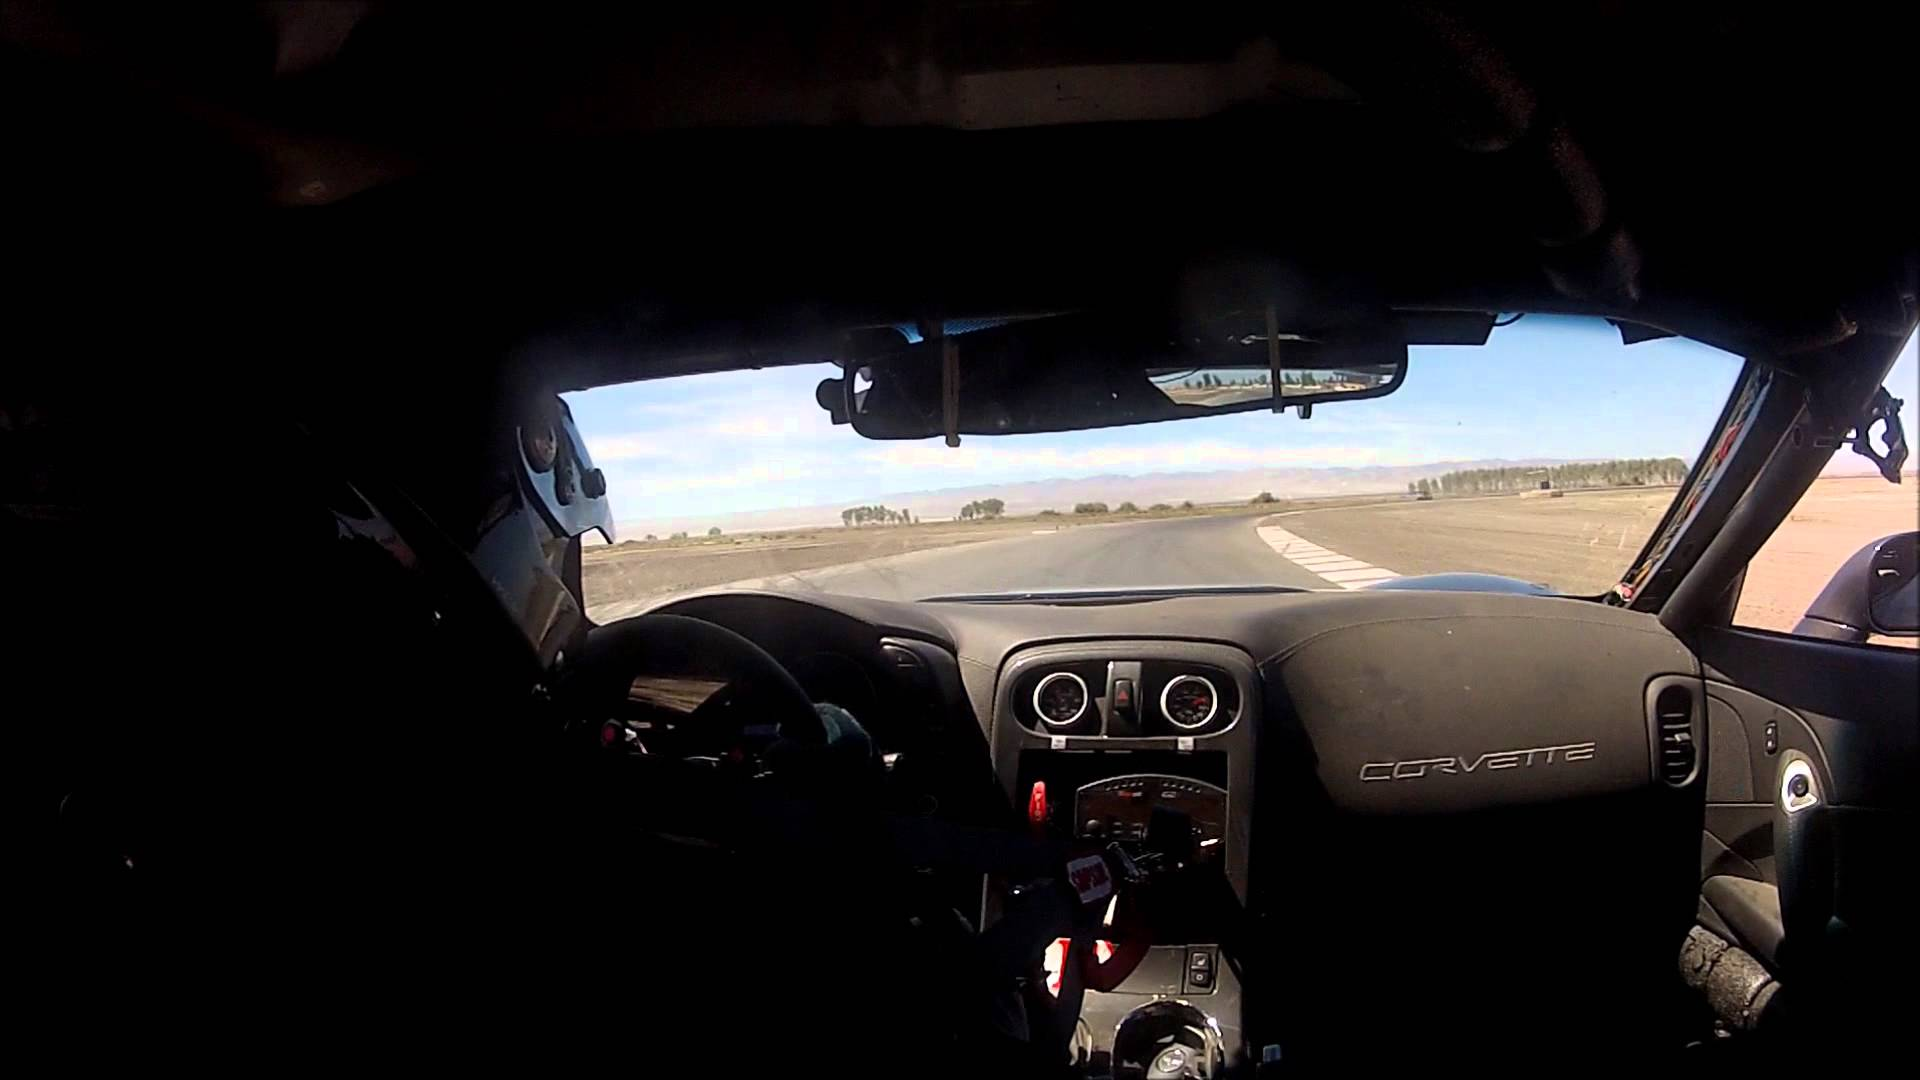 REDLINE TIME ATTACK |Corvette C6 Z06 Race Car